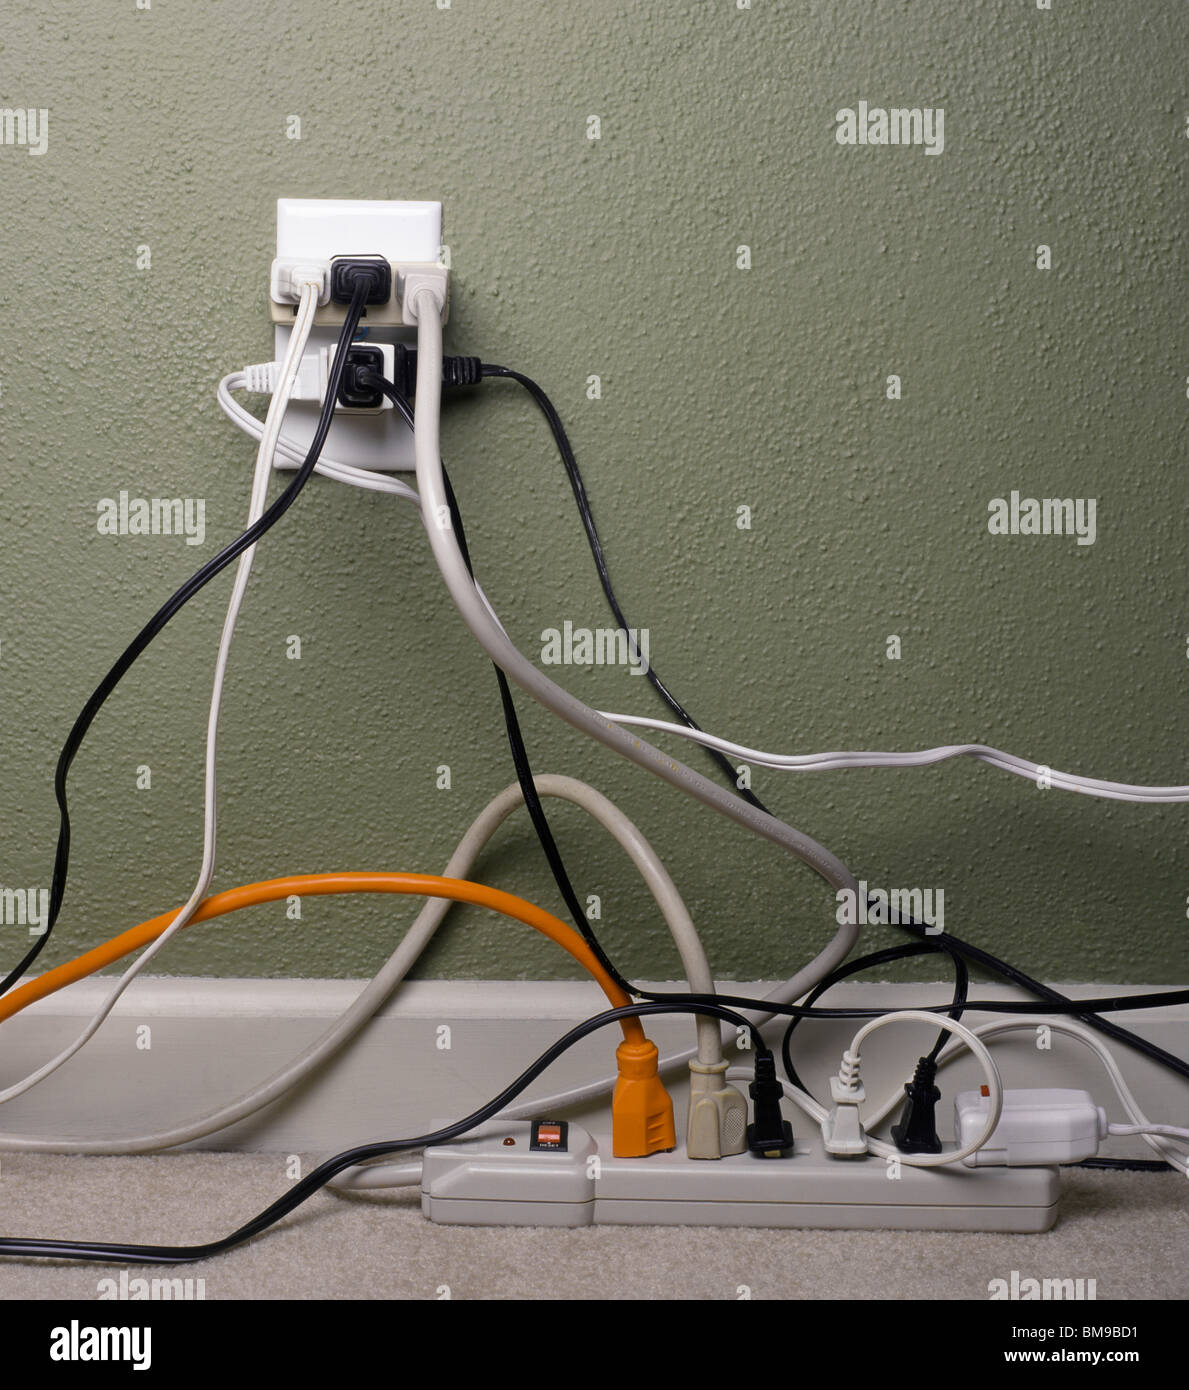 Multiple electrical plugs in overloaded wall outlet Stock Photo ...